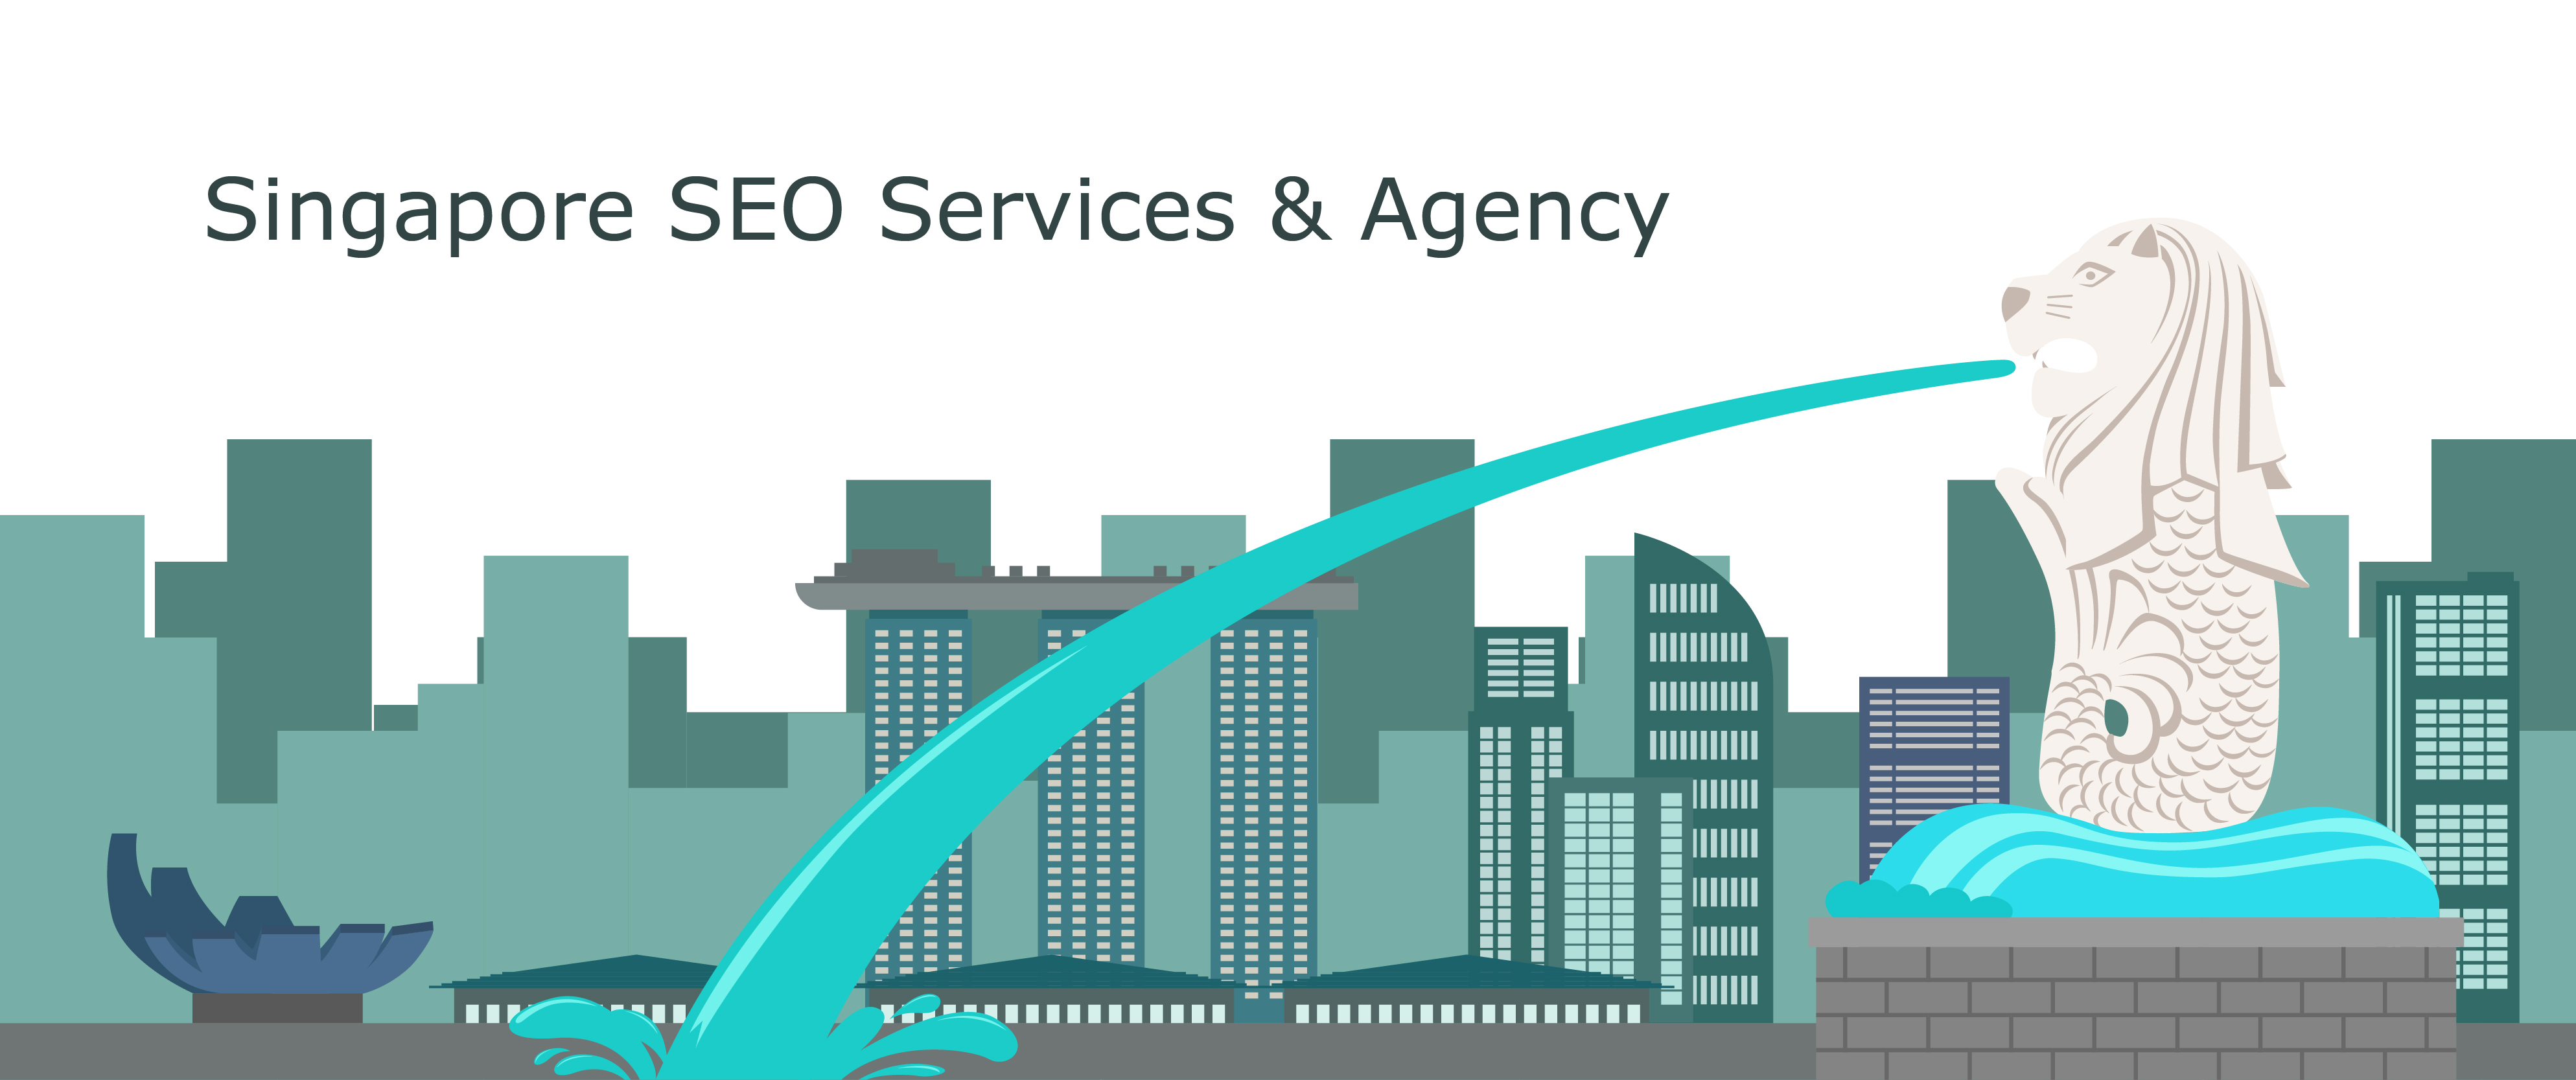 digital marekting and seo agency in singapore